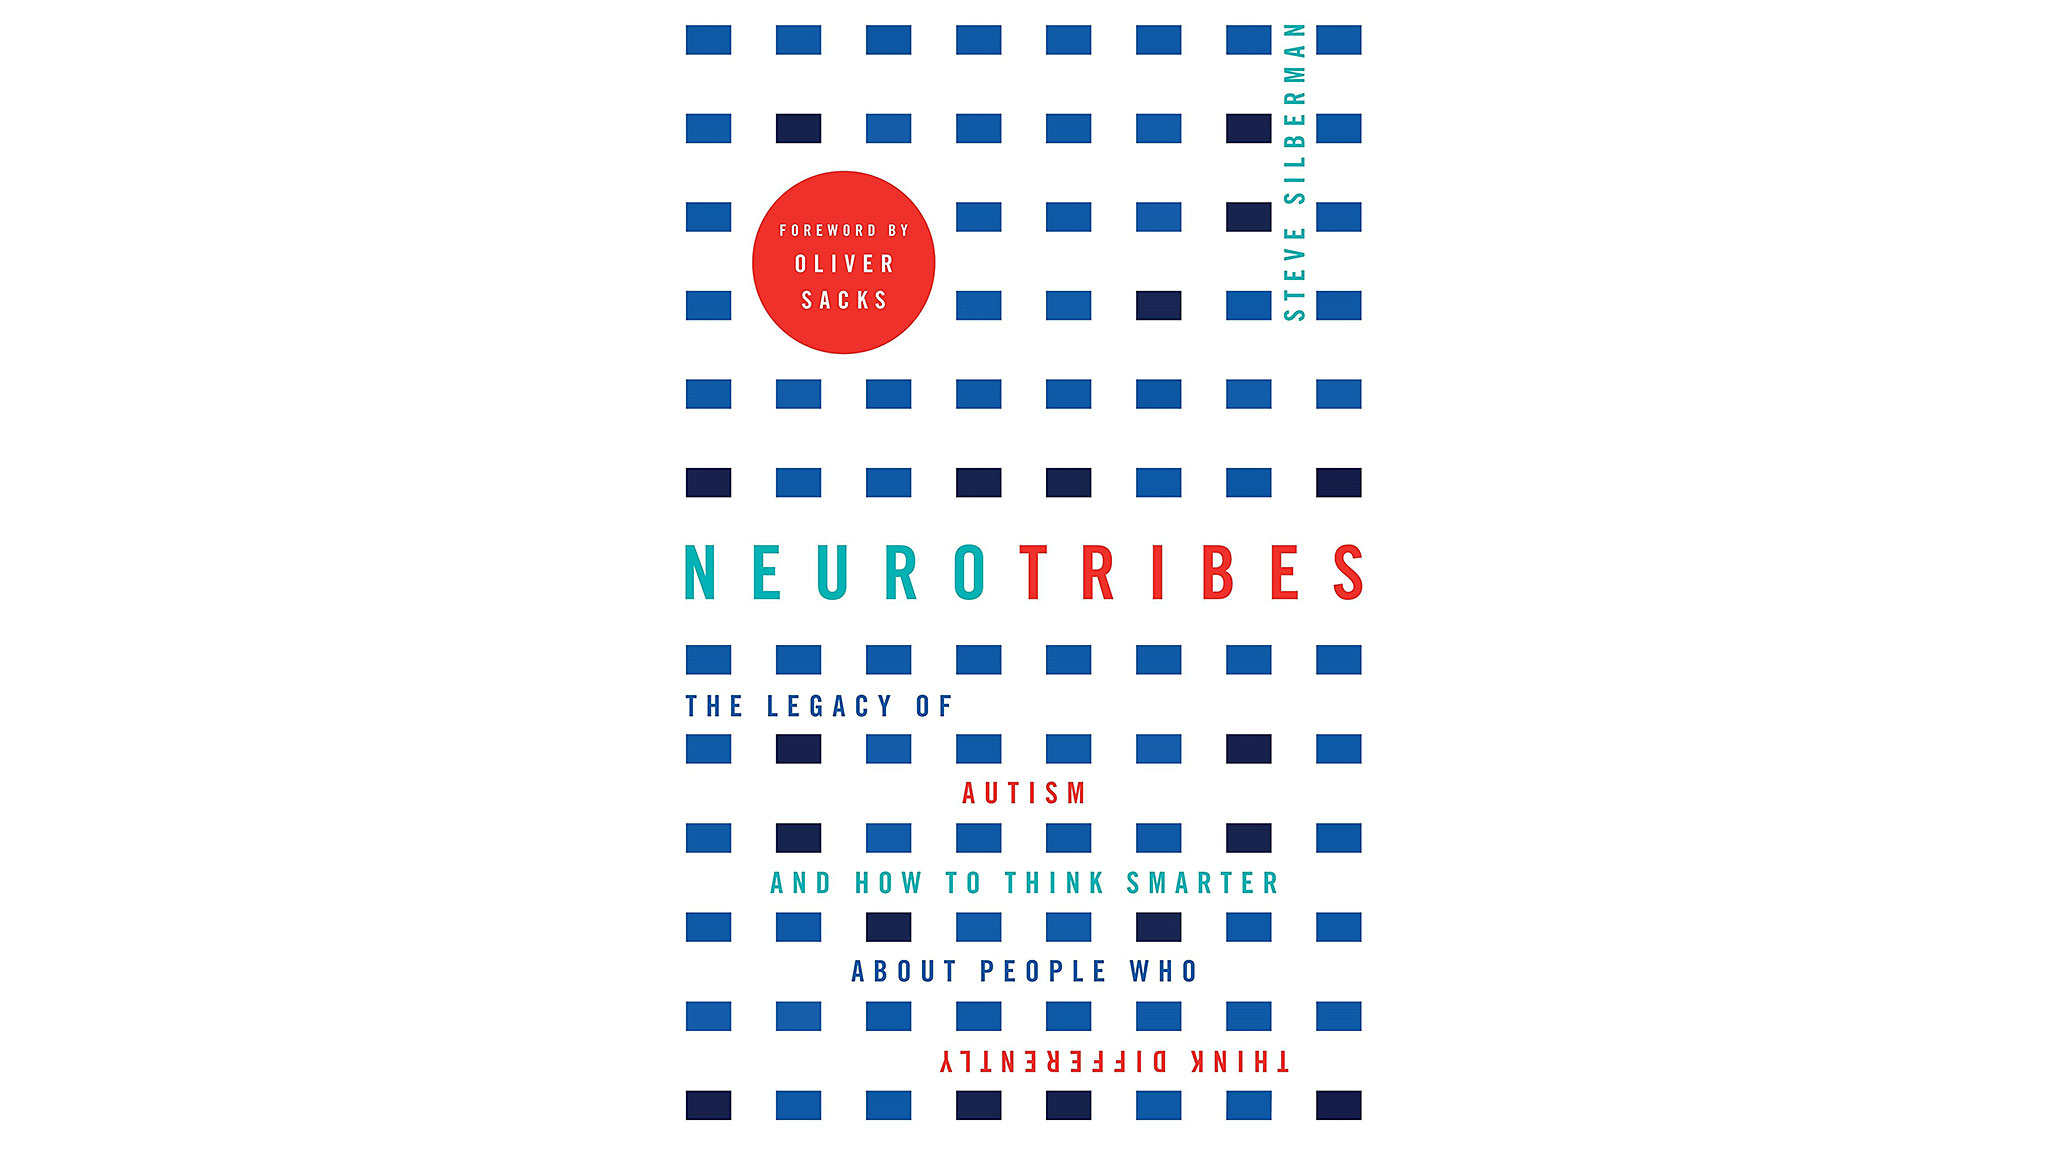 Thinking About Autism And Neurodiversity >> Neurotribes The Legacy Of Autism And How To Think Smarter About